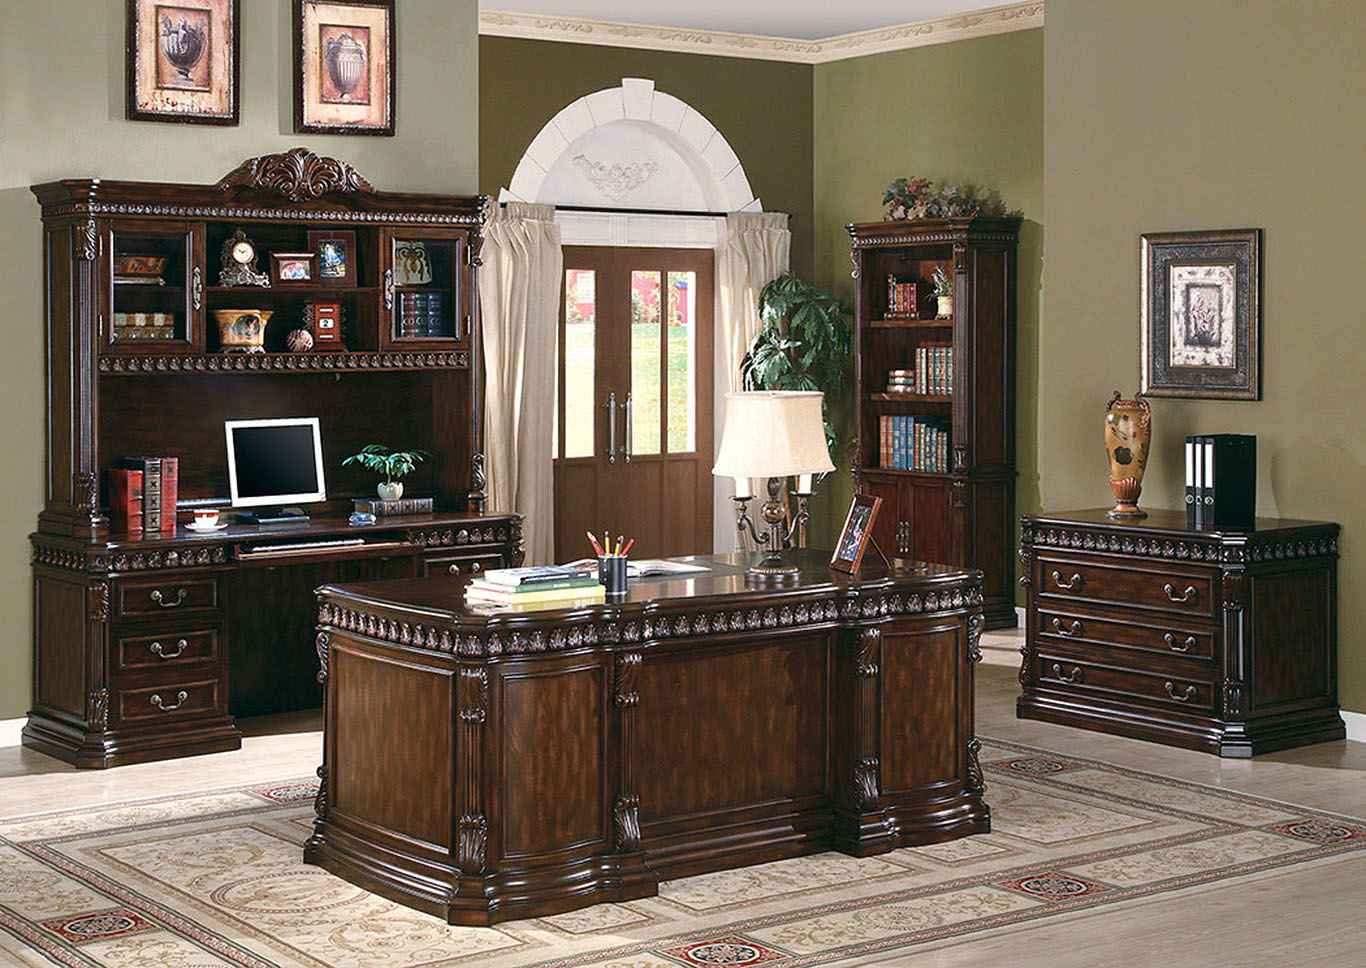 Tucker Rich Brown Credenza Desk,Coaster Furniture